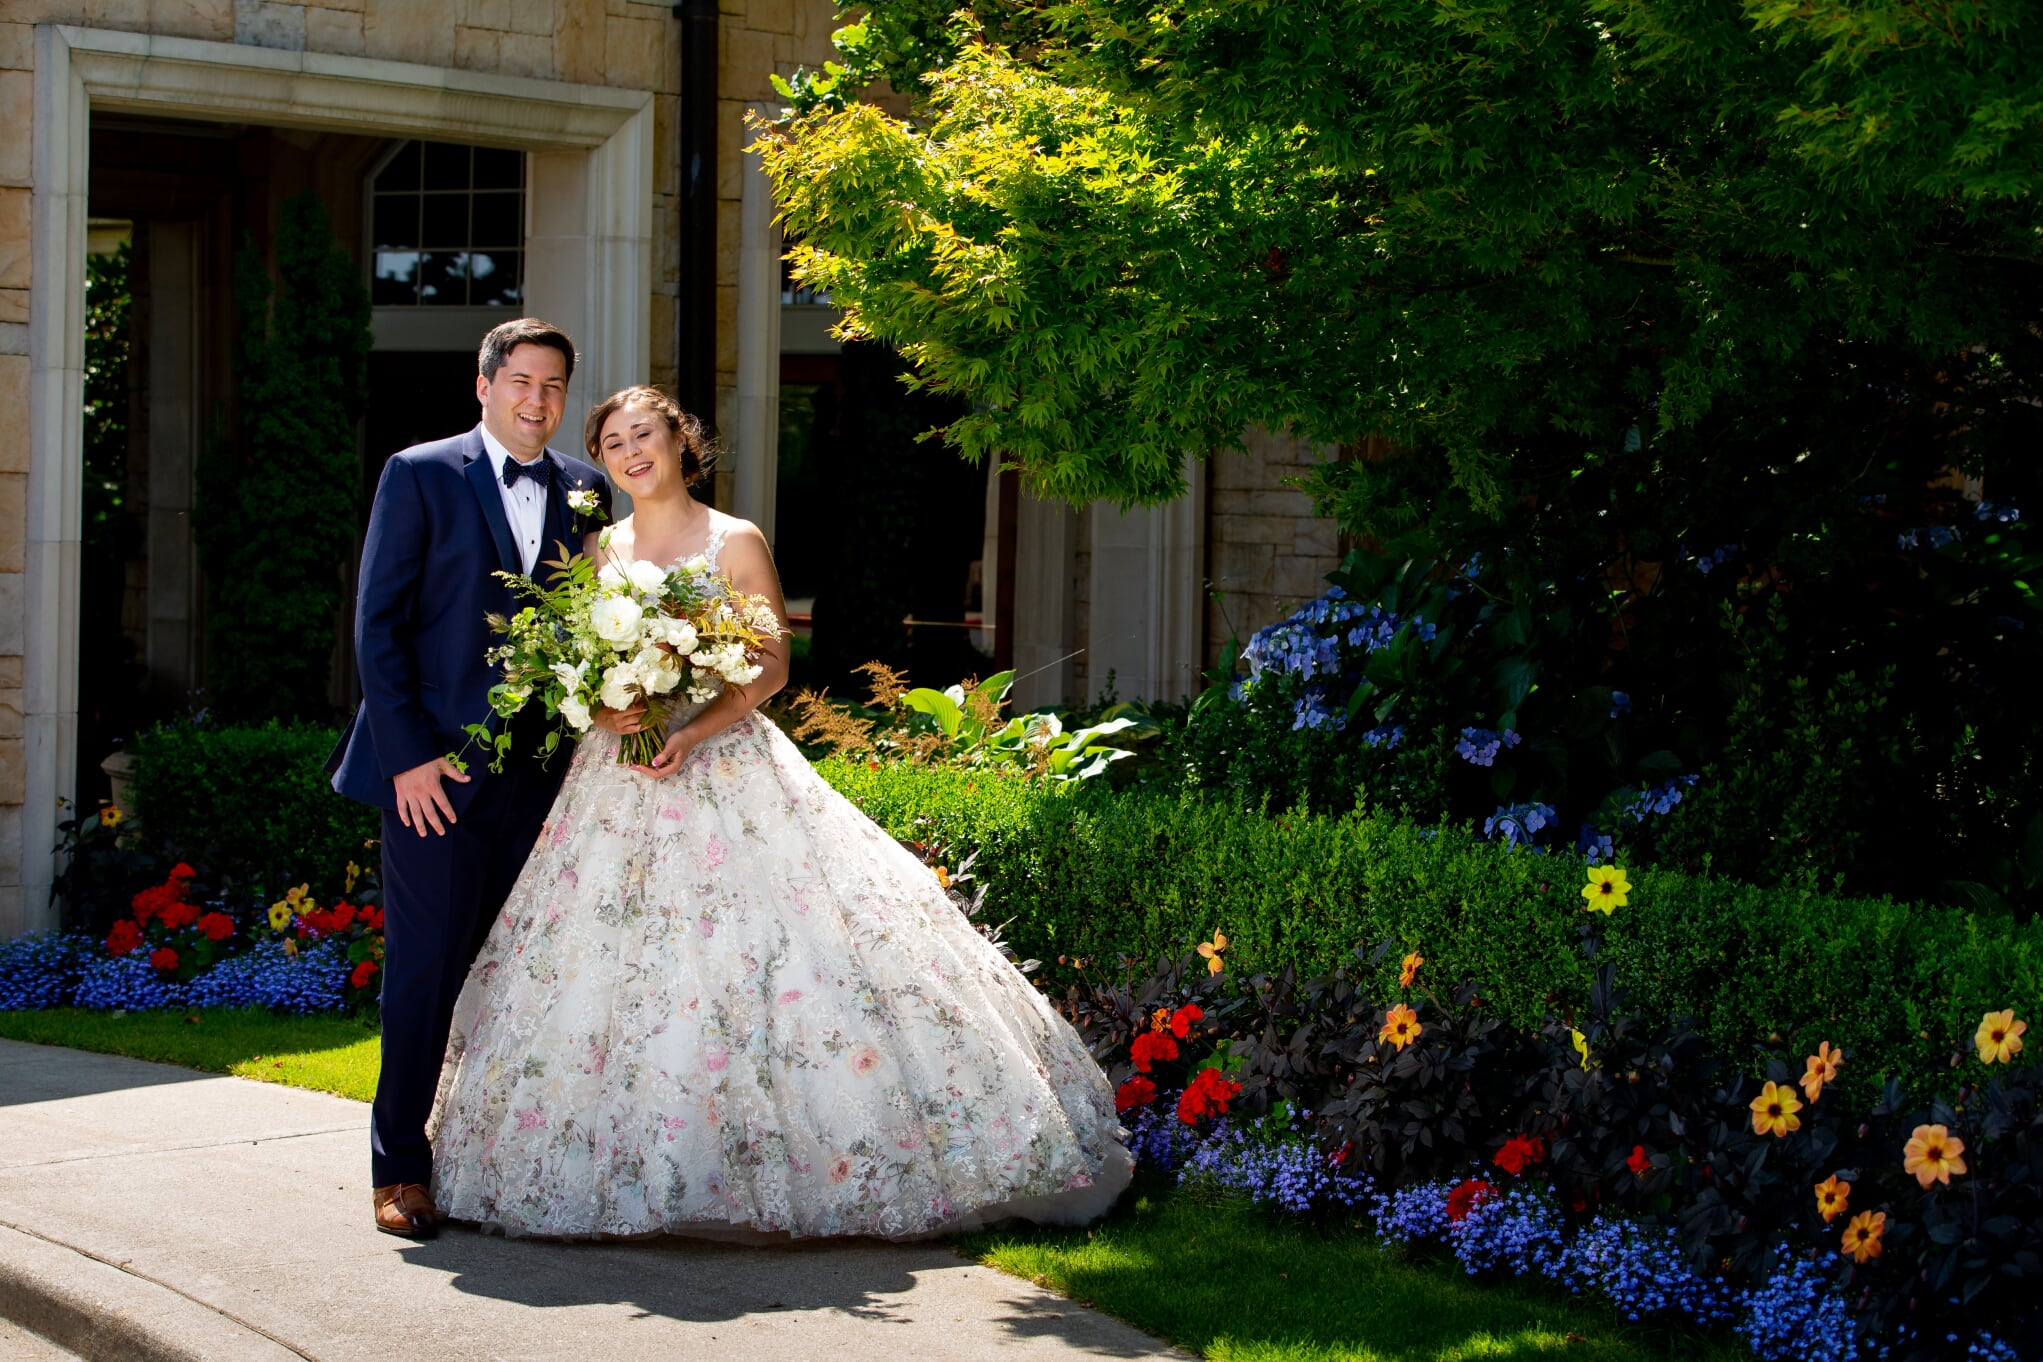 Groom and Bride in floral wedding dress standing in garden